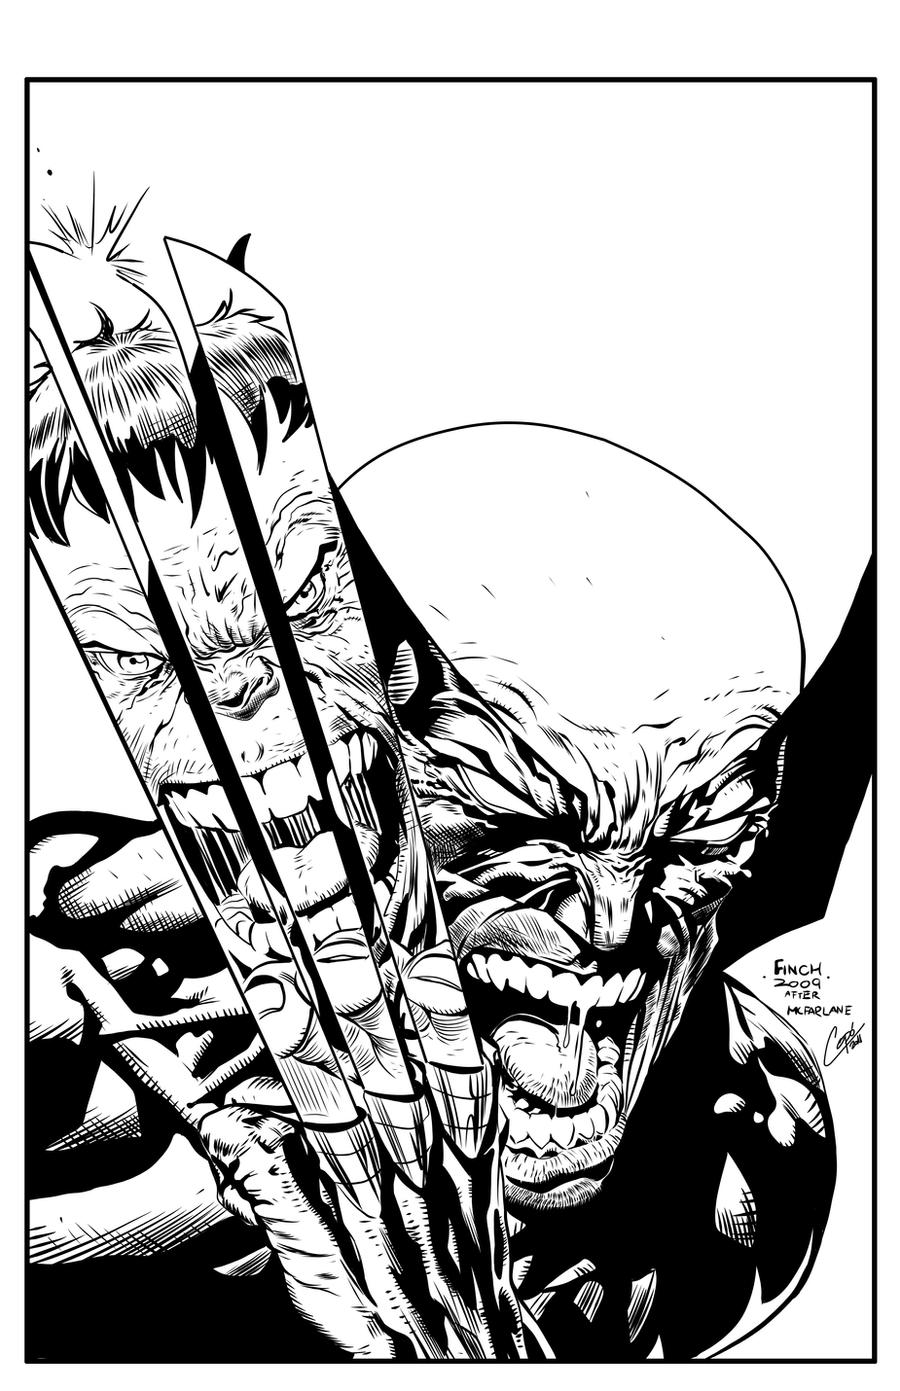 Wolverine vs hulk by jorgecopo on deviantart for Coloring pages wolverine